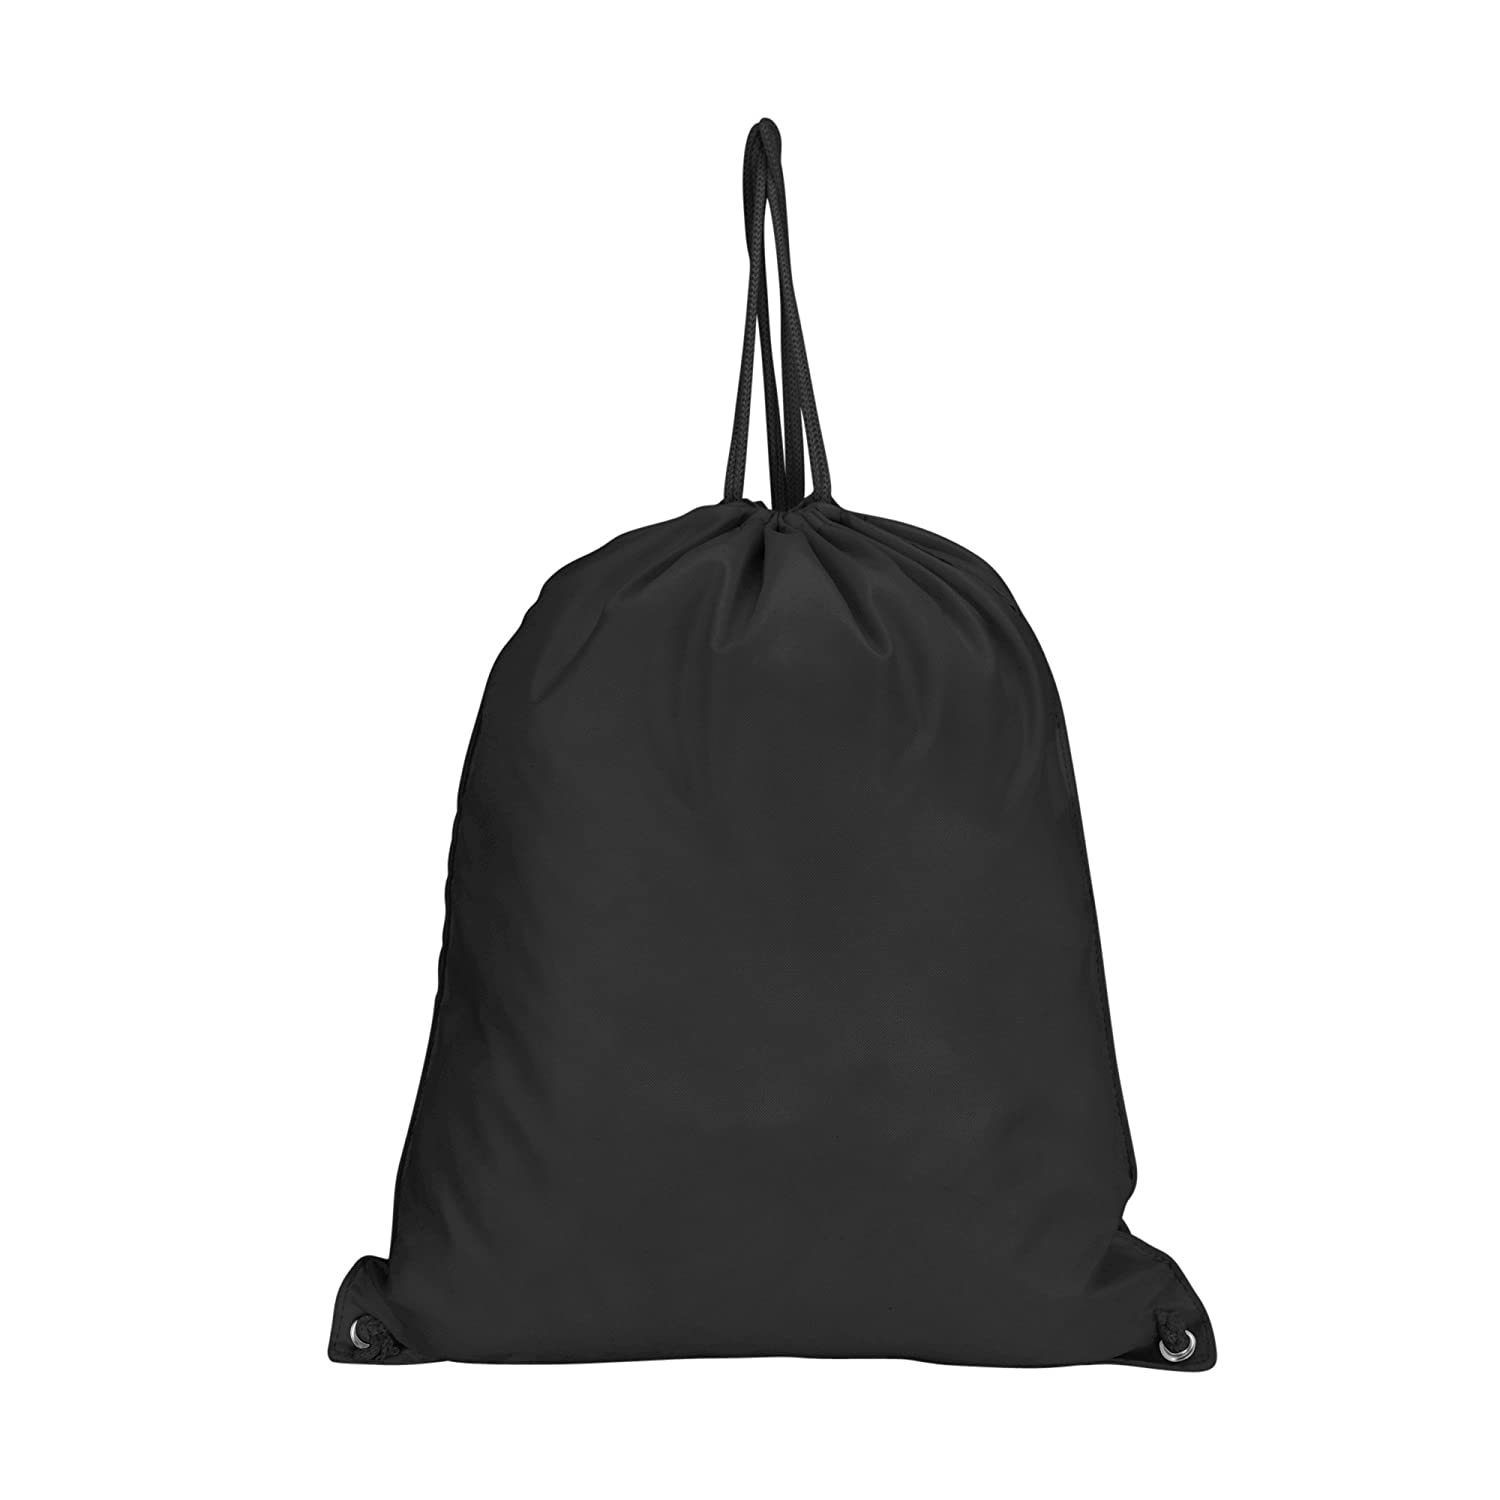 DALIX Drawstring Backpack Sack Bag DT-008-Black Red, Blue, Black, Yellow, Pink, Navy